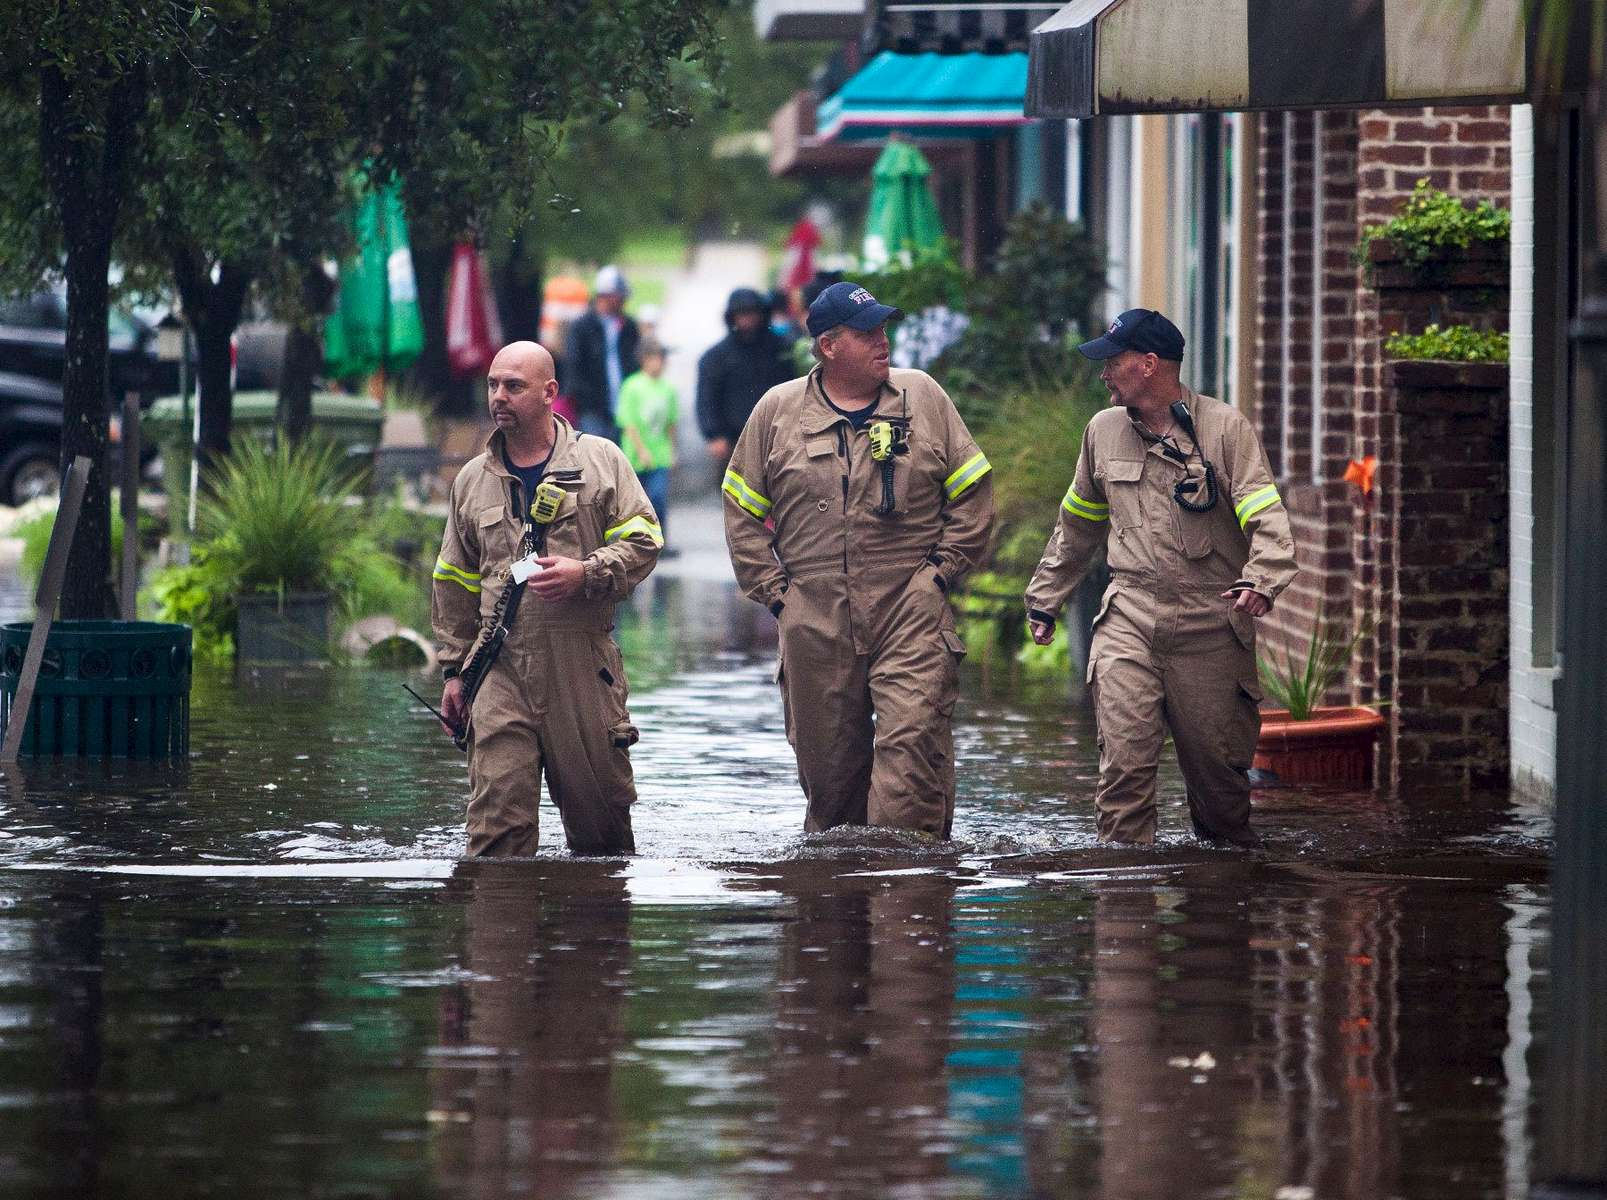 Norman Beauregard, (From Left) Kevin Attender and Chris Rogers, all with the Georgetown Fire Department, wade through flooded Front Street in Georgetown, South Carolina October 4, 2015. Most major roads through the historical South Carolina city have closed due to flooding. Vast swaths of U.S. Southeast and mid-Atlantic states were grappling with heavy rains and flooding from a separate weather system which has already caused at least five deaths, washed out roads and prompted evacuations and flash flood warnings. REUTERS/Randall Hill